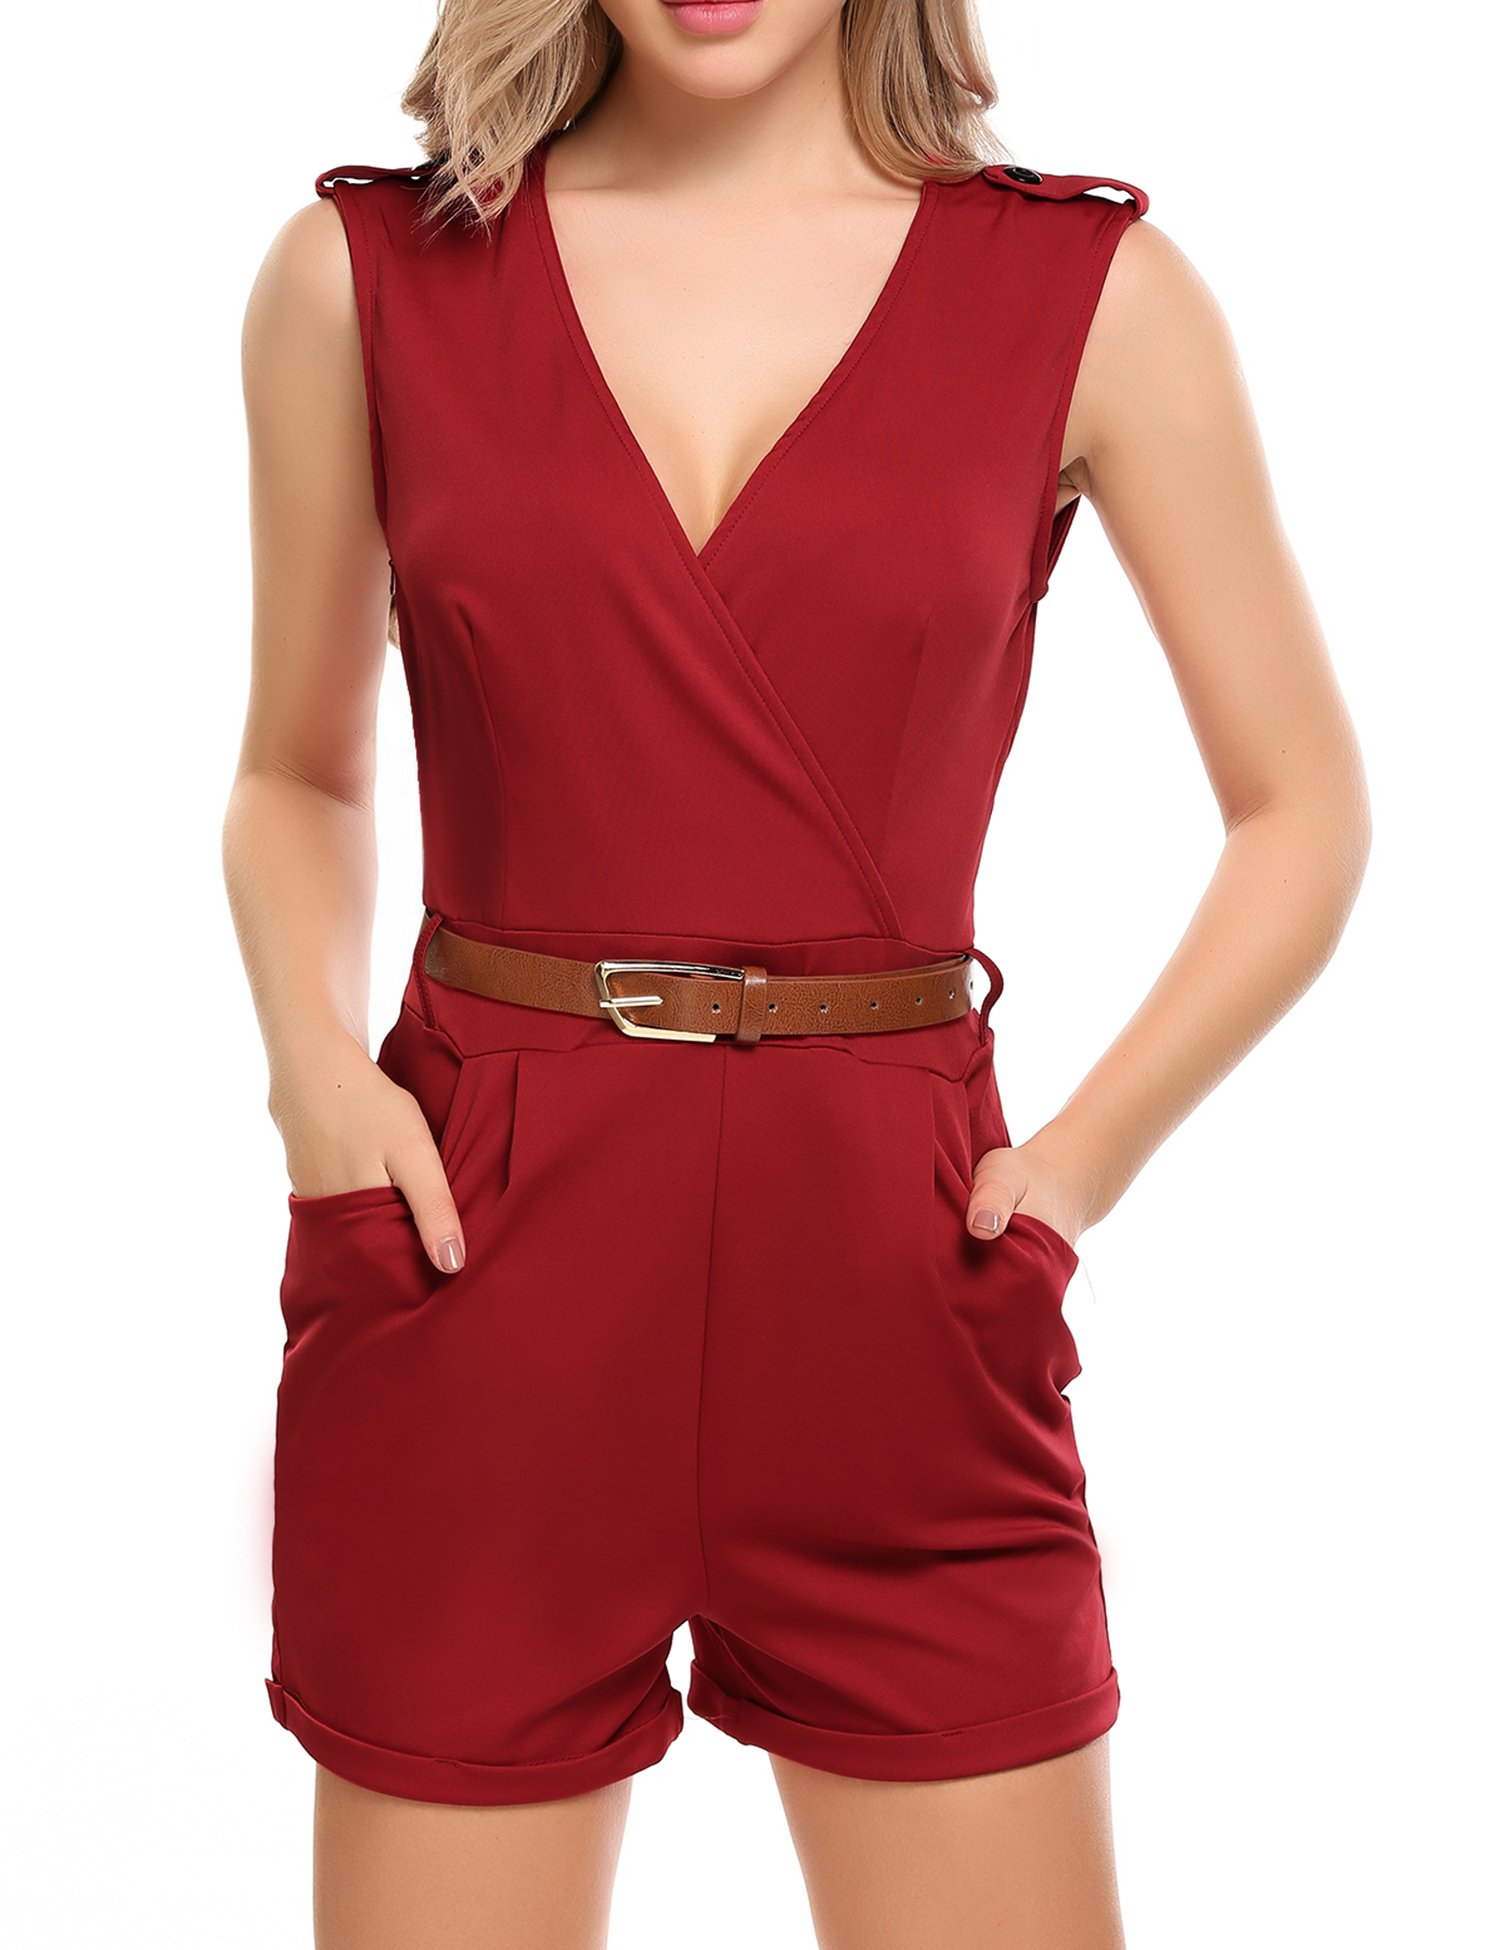 Zeagoo Women Casual Sleeveless V-Neck Solid Slim Playsuits Romper Shorts with Belt